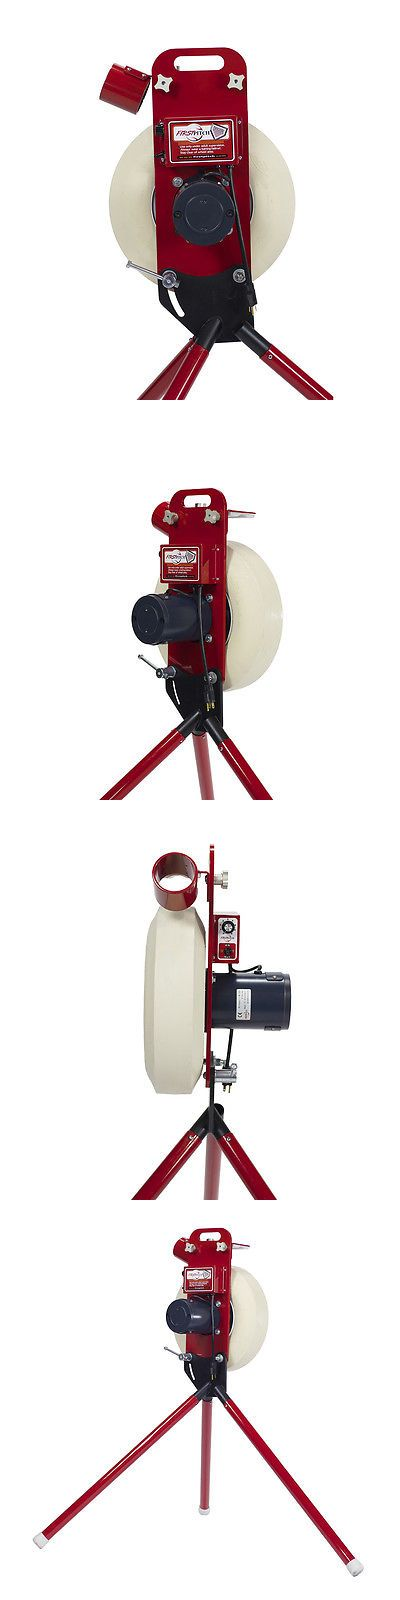 Pitching Machines 58061: First Pitch Original Baseball Softball Pitching Machine 80Mph 24 And 32 Legs -> BUY IT NOW ONLY: $959 on eBay!